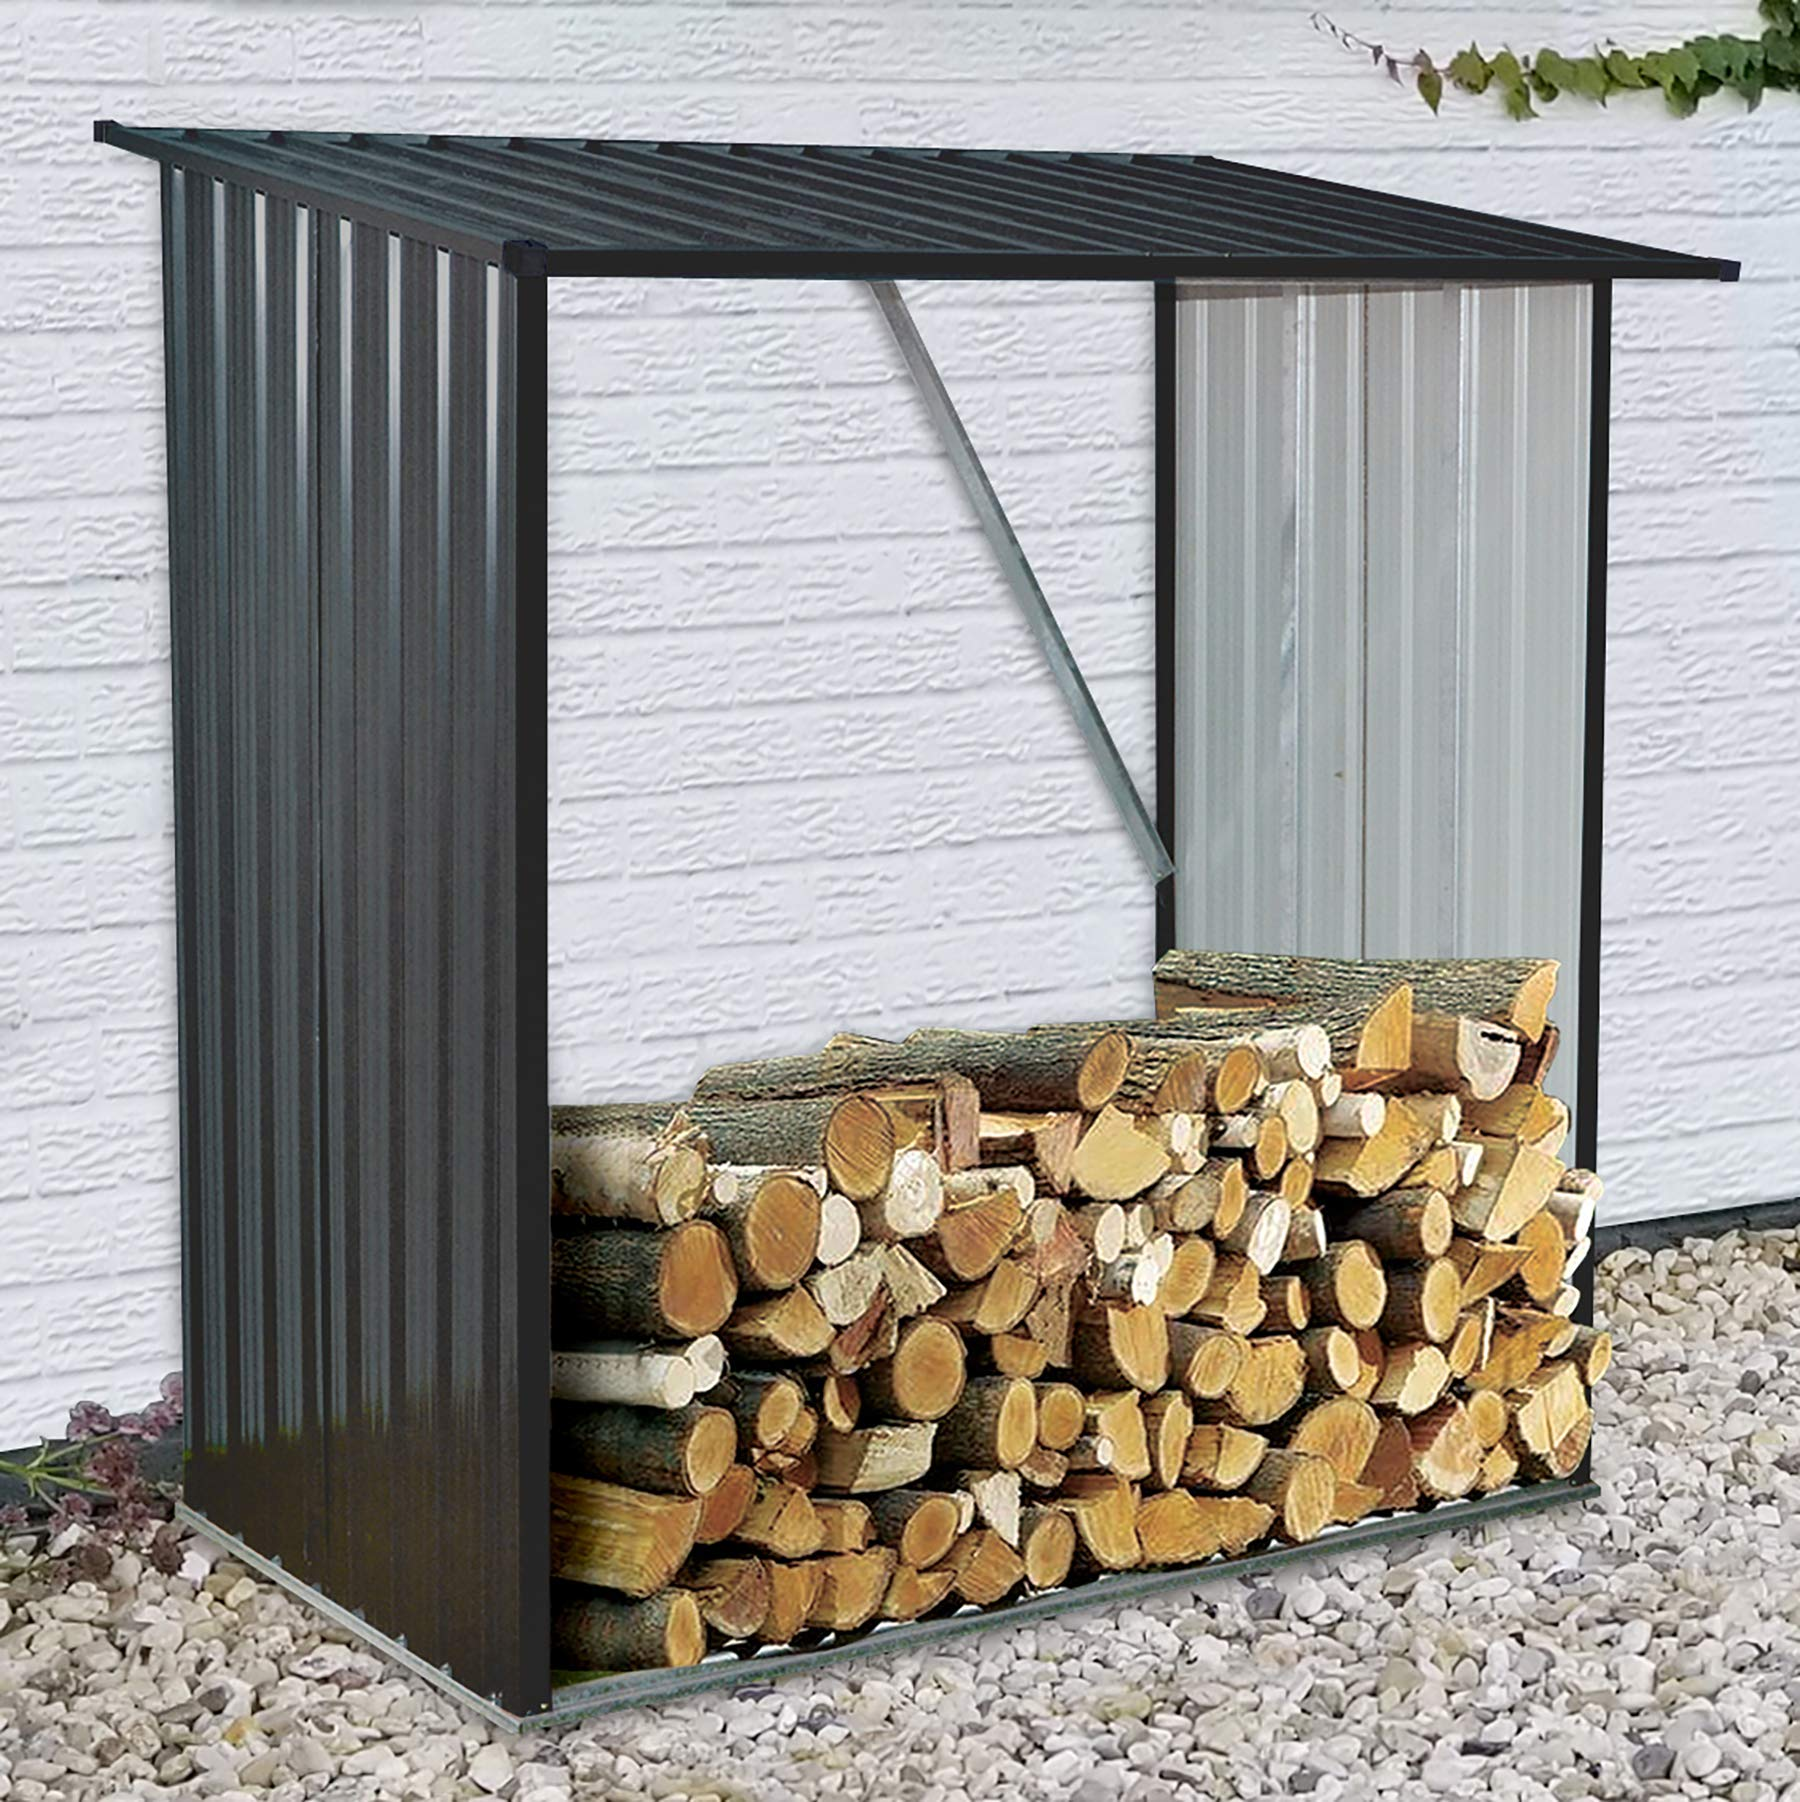 Hanover HANWDSHD-Gry Holds up to 55 CU. FT. of Stacked Indoor/Outdoor Galvanized Steel Firewood Storage Rack, Gray by Hanover